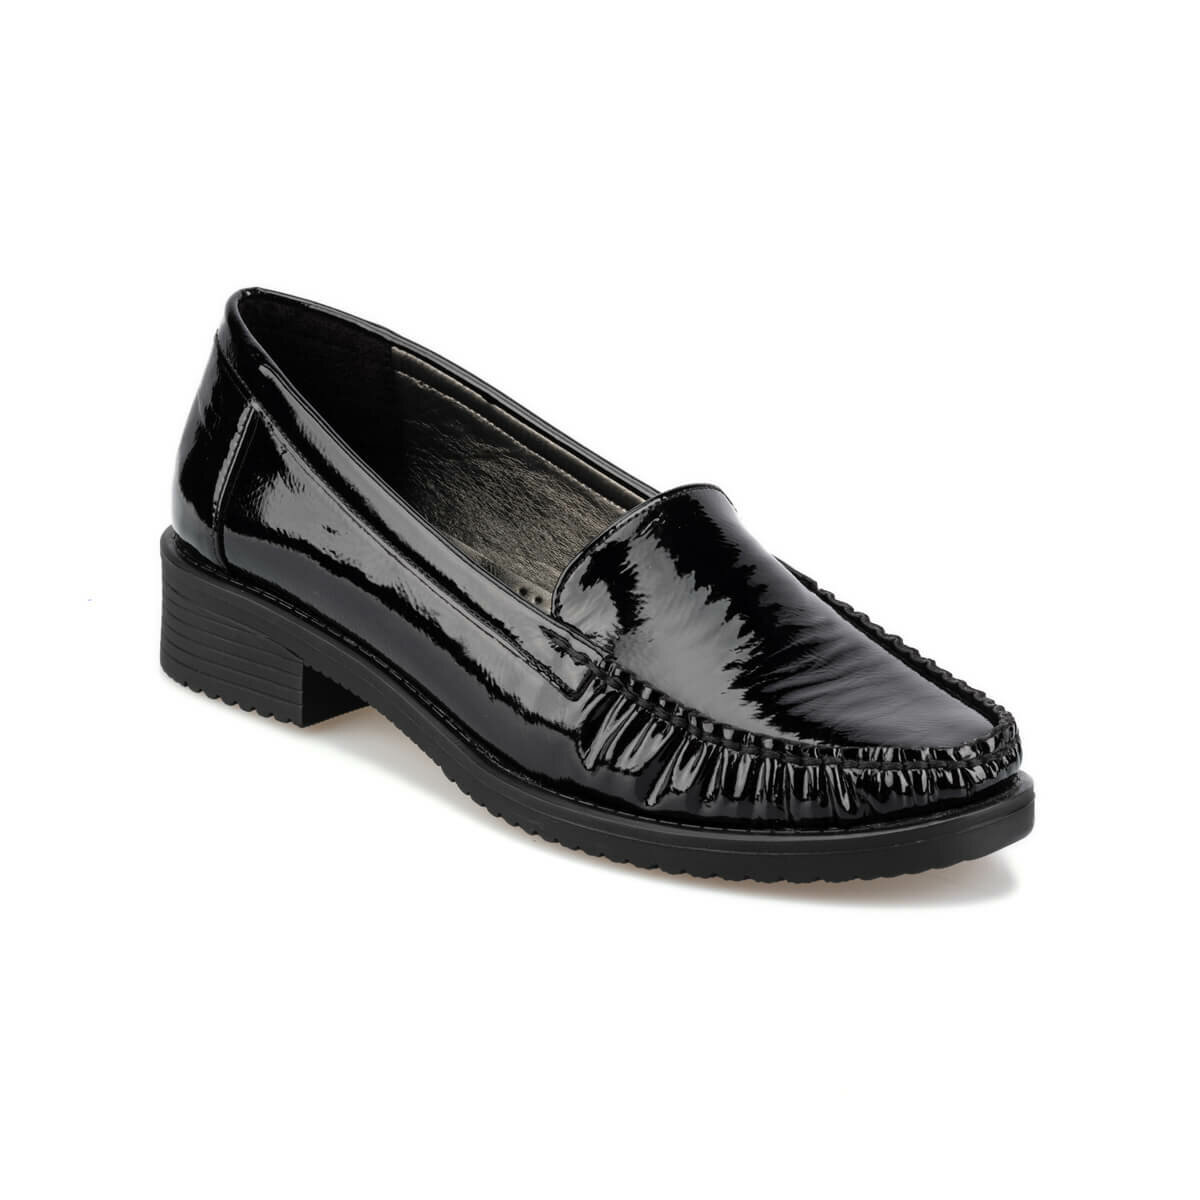 FLO 92.151056RZ Black Women Loafer Shoes Polaris